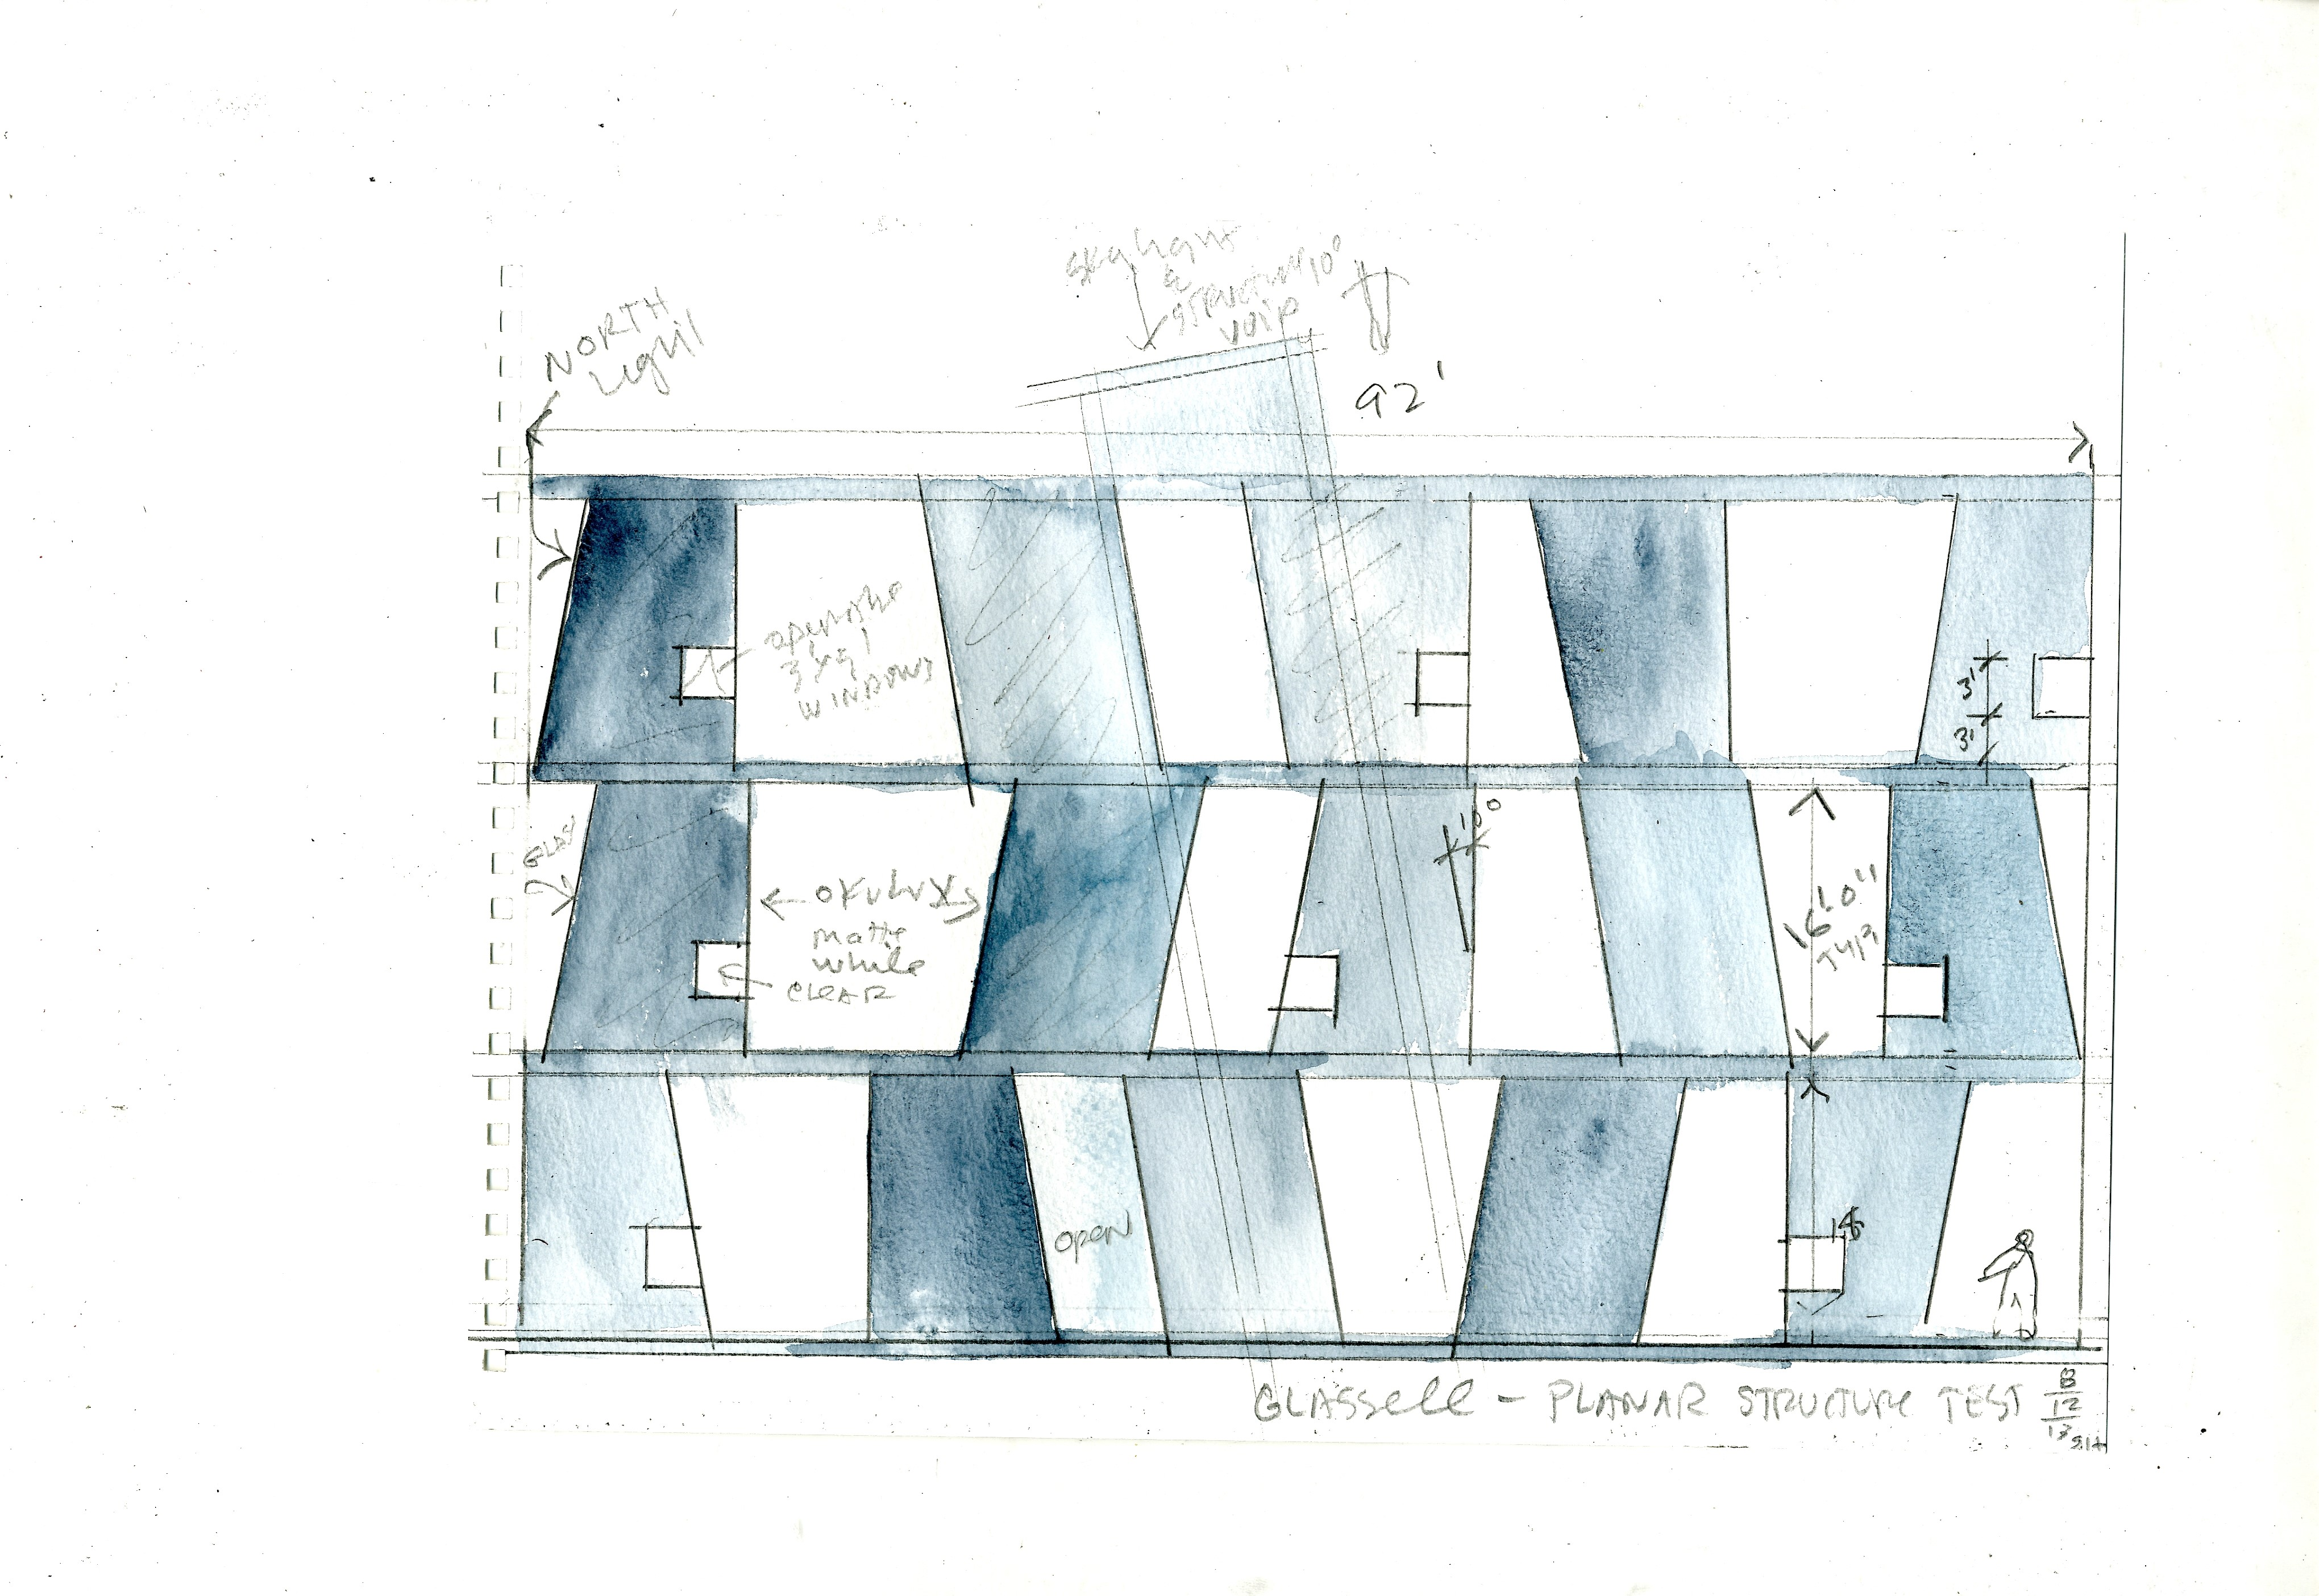 Campus plans - Glassell watercolor